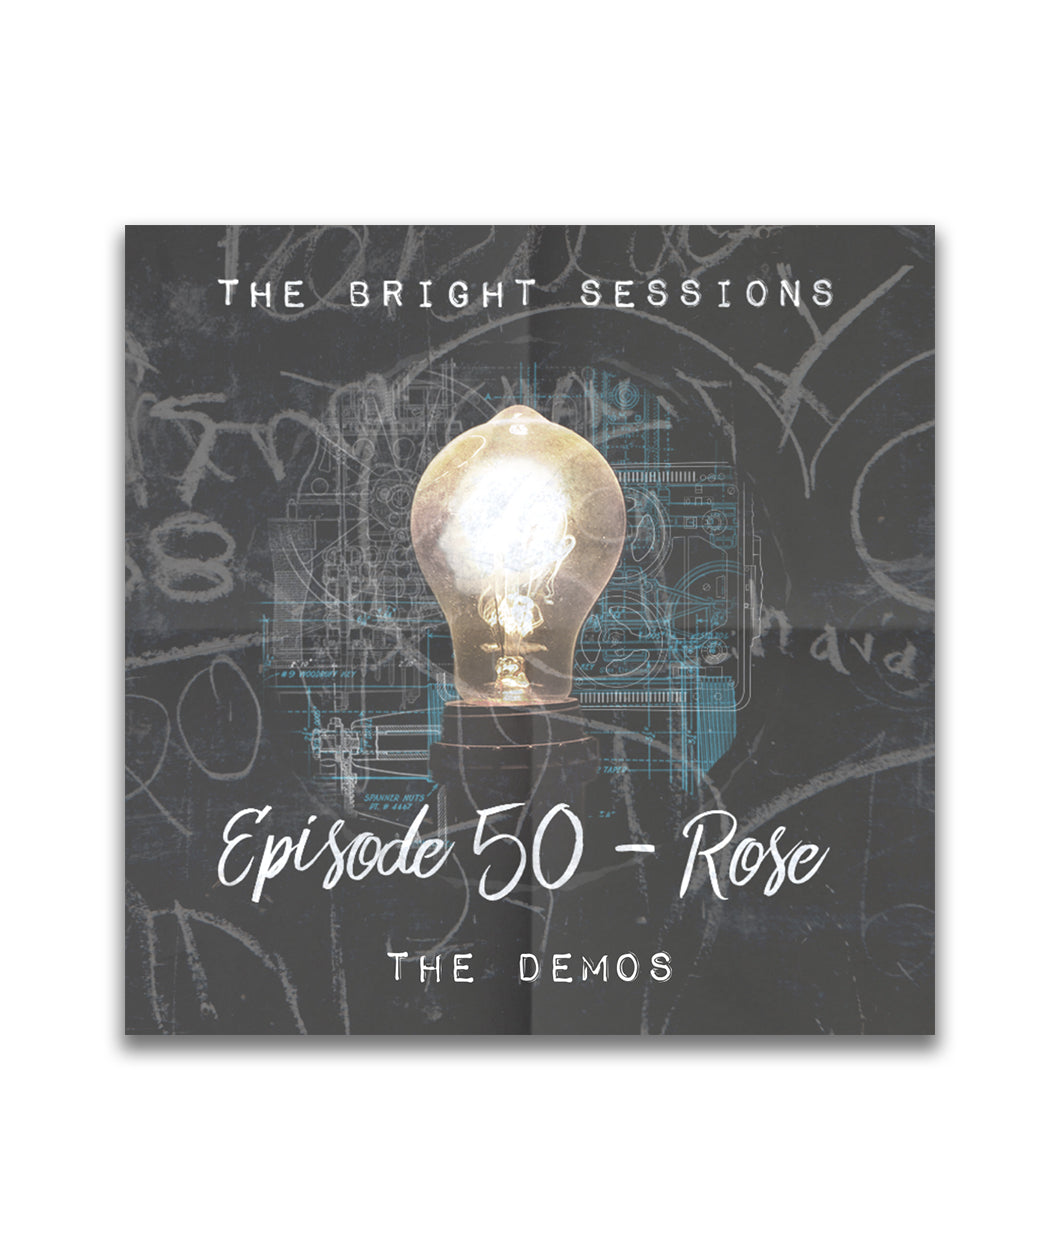 Episode 50 - Rose Demos